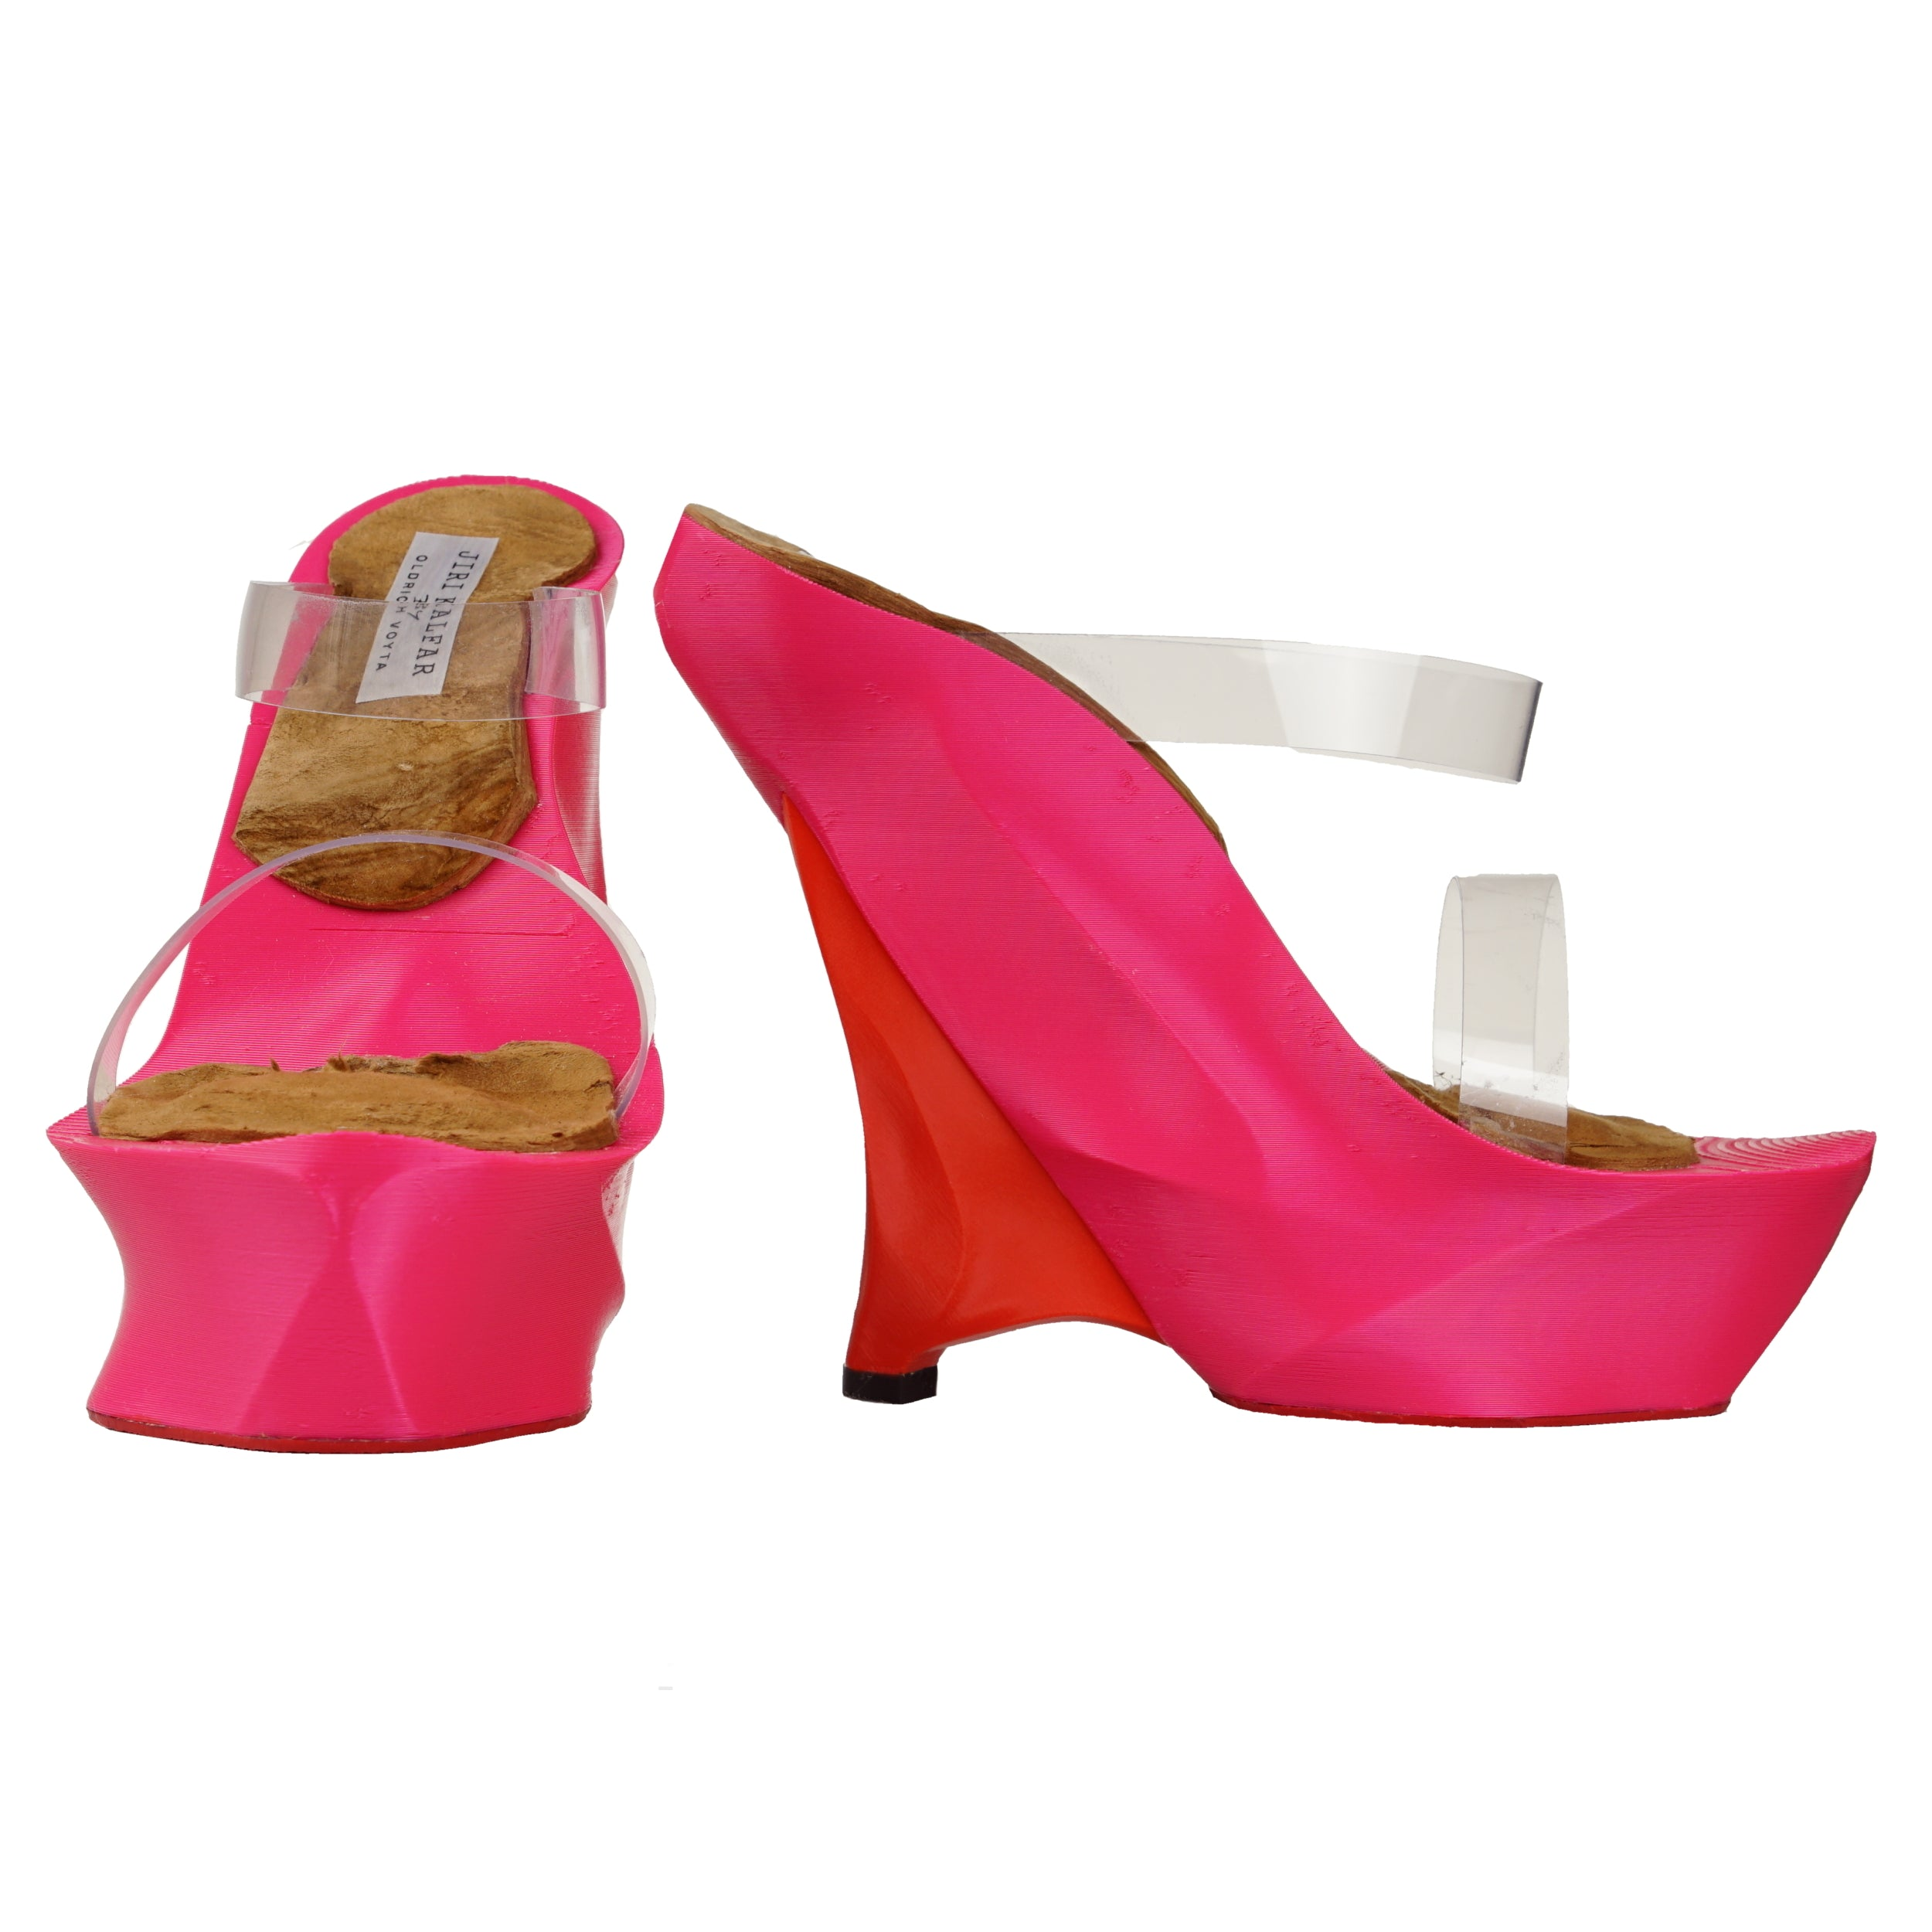 ELECTRIC PINK & RED 3D PRINT SHOES WITH PVC STRAPS